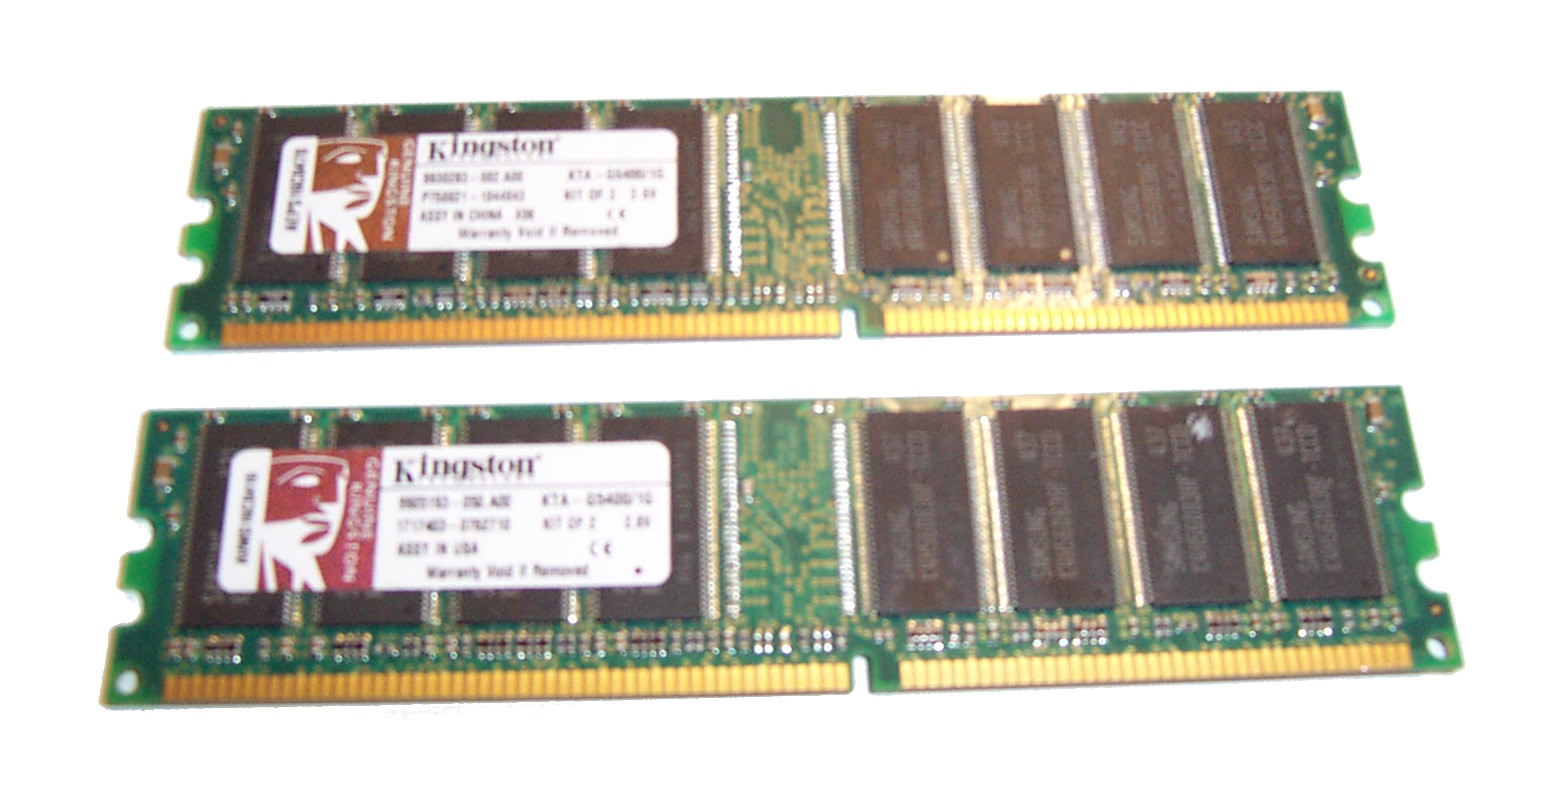 Kingston KTA-G5400/1G 1GB(512 x 2) PC3200 DDR SDRAM- Kit of 2